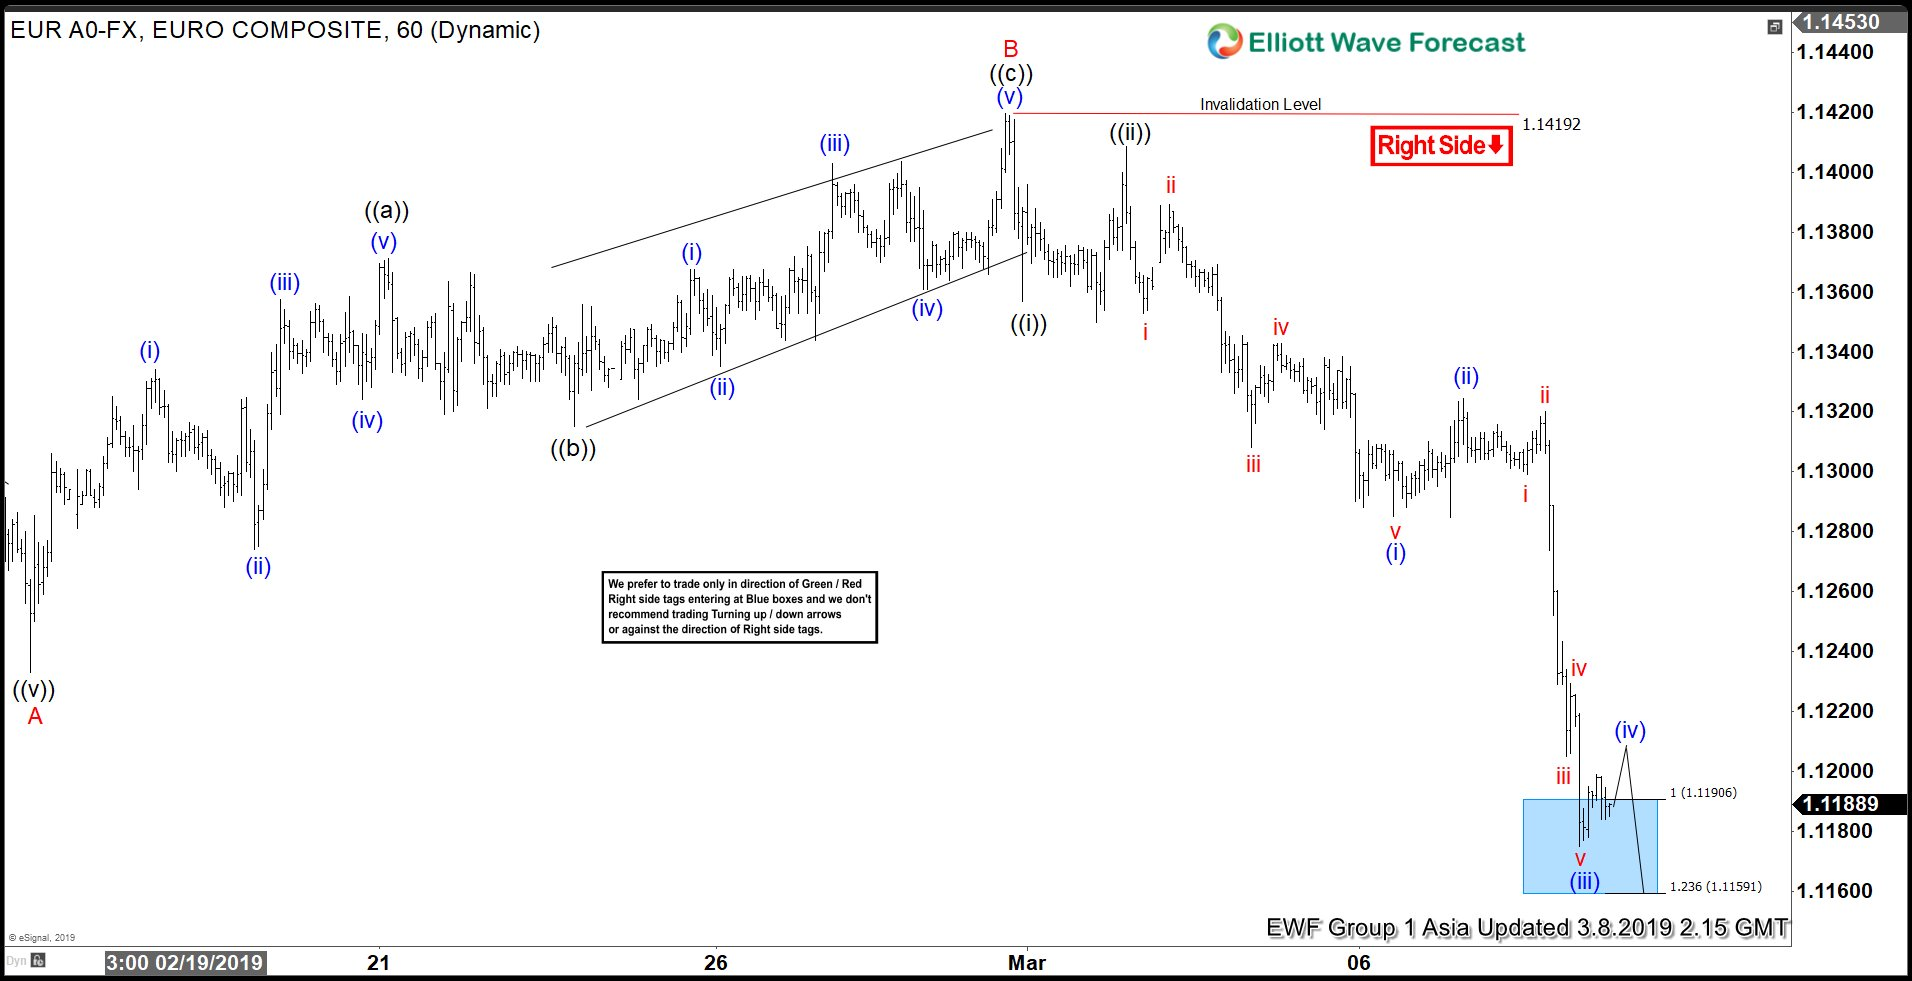 Elliott Wave View: EURUSD Breaks Down After ECB Meeting. What's Next?